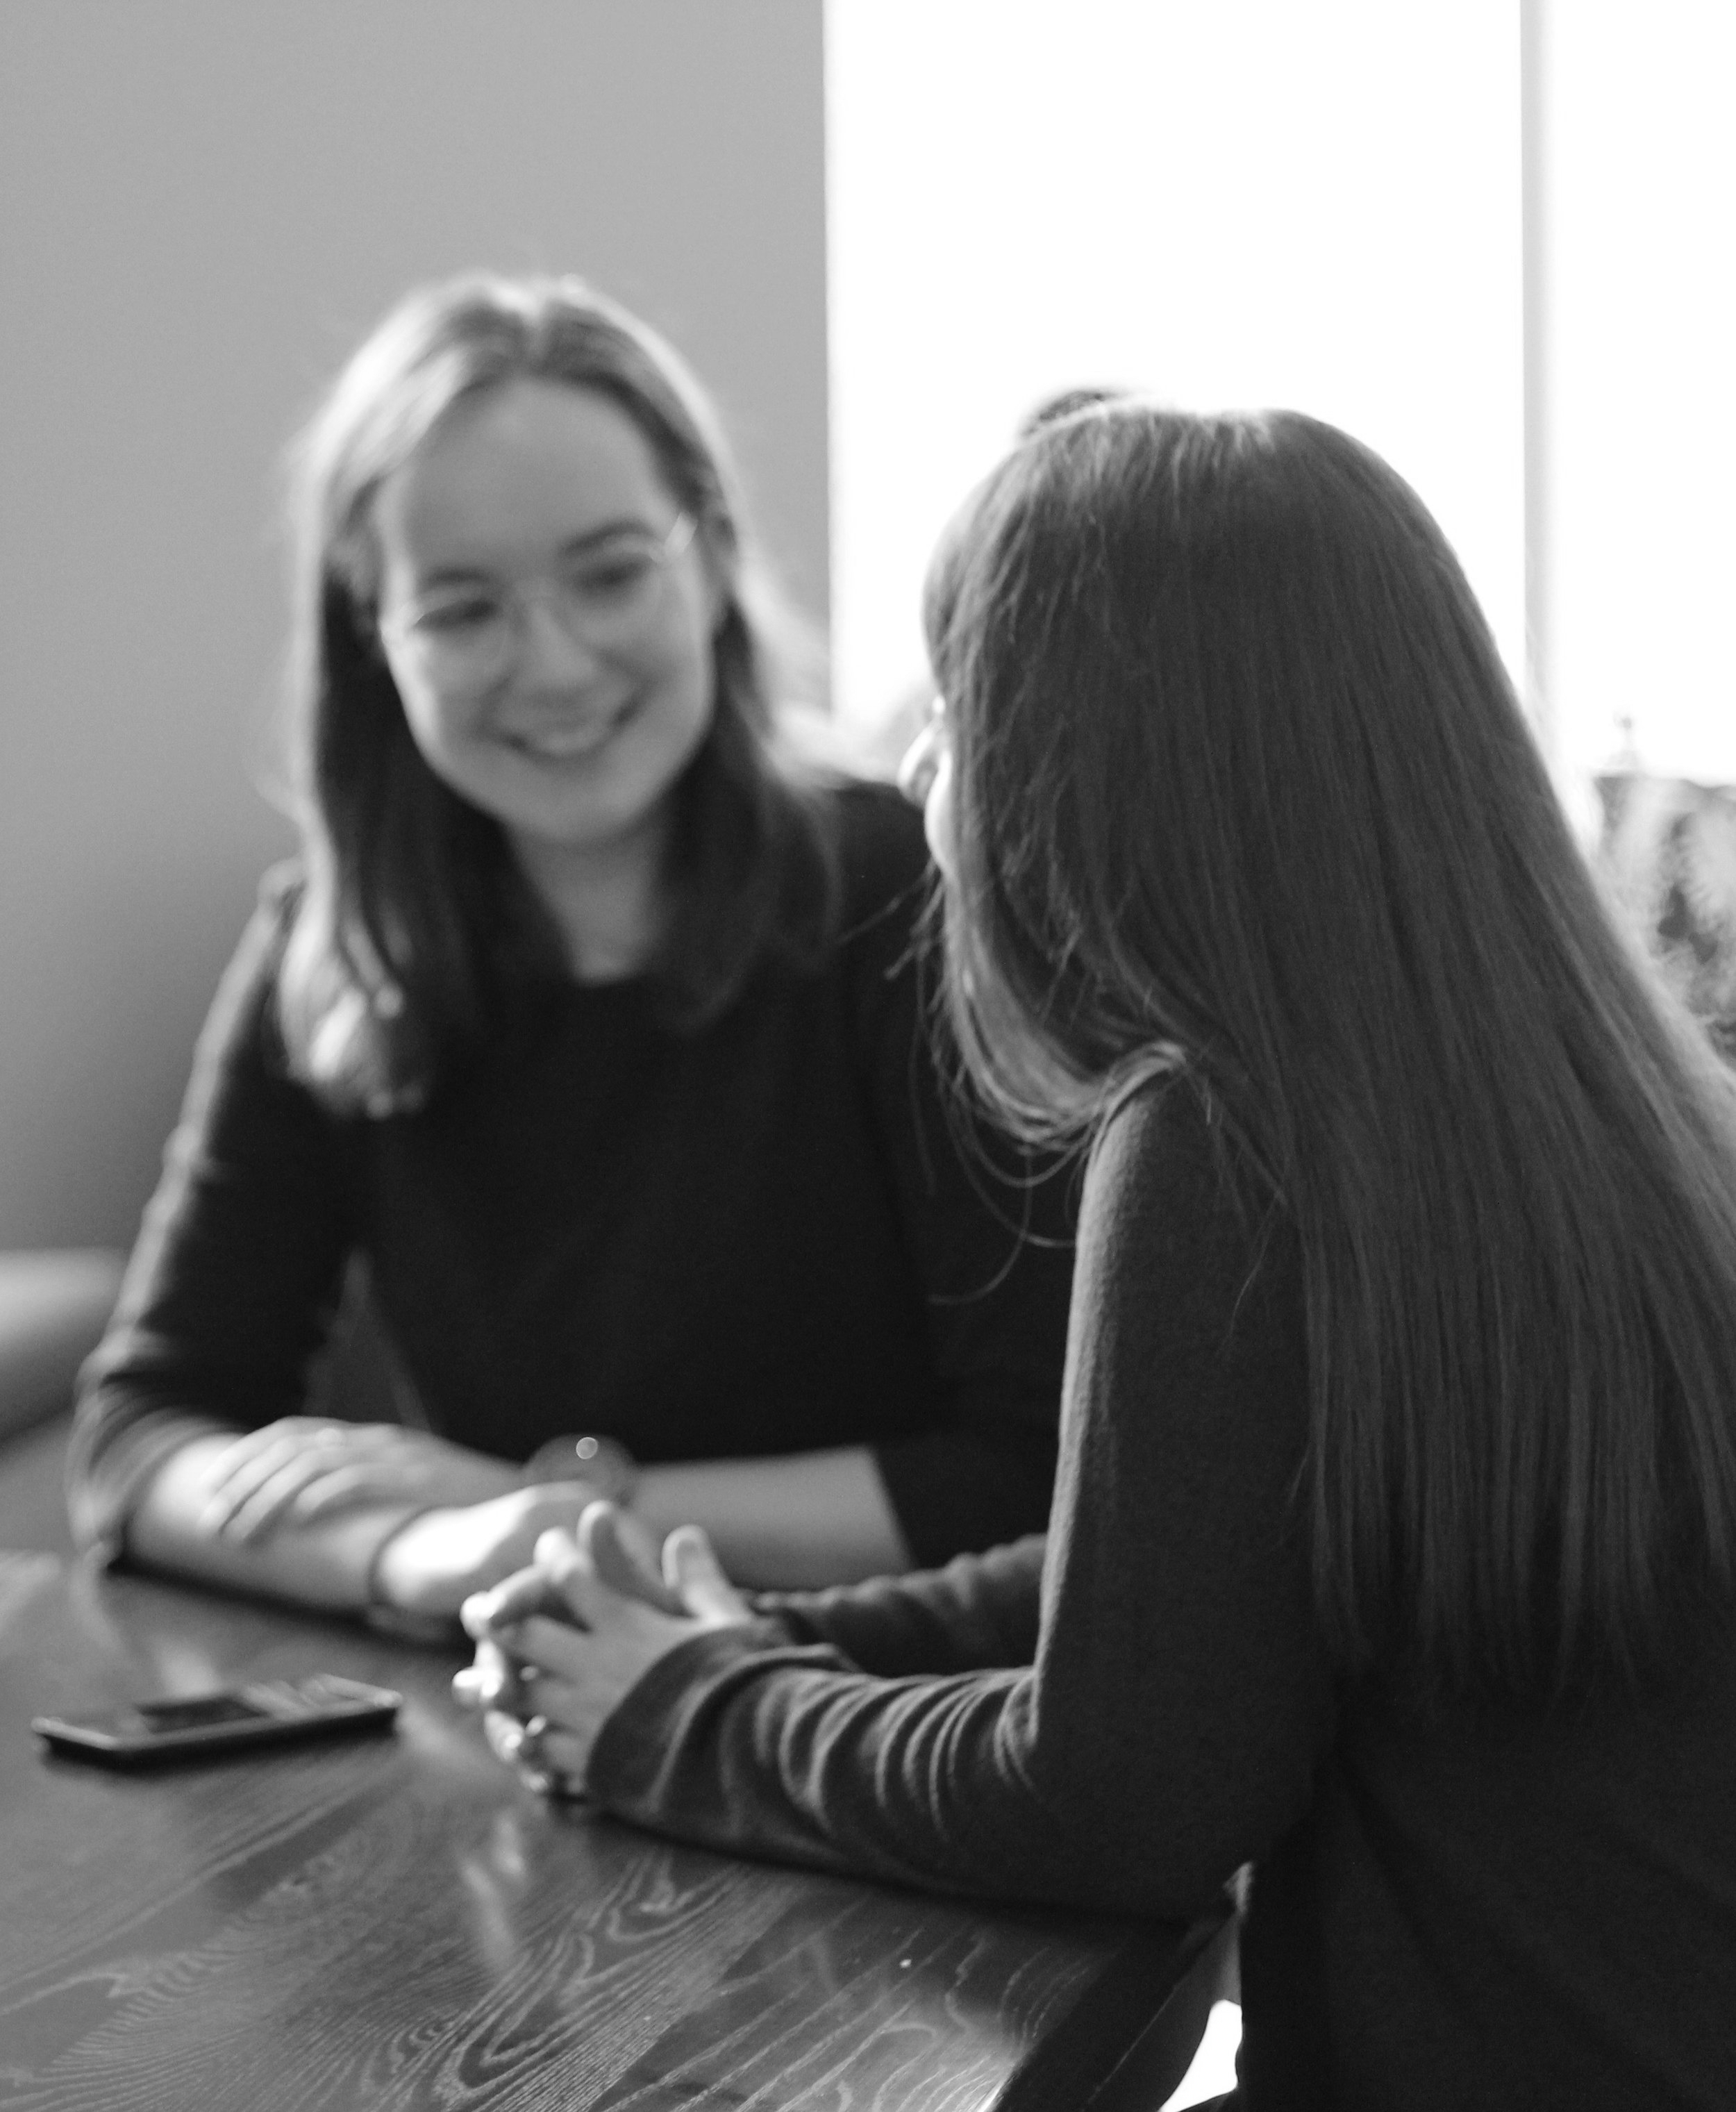 WHAT ARE WE DOING? - Providing meaningful connection and support for young adults experiencing cancer and young adult cancer survivors primarily though our app-based platform.Learn More